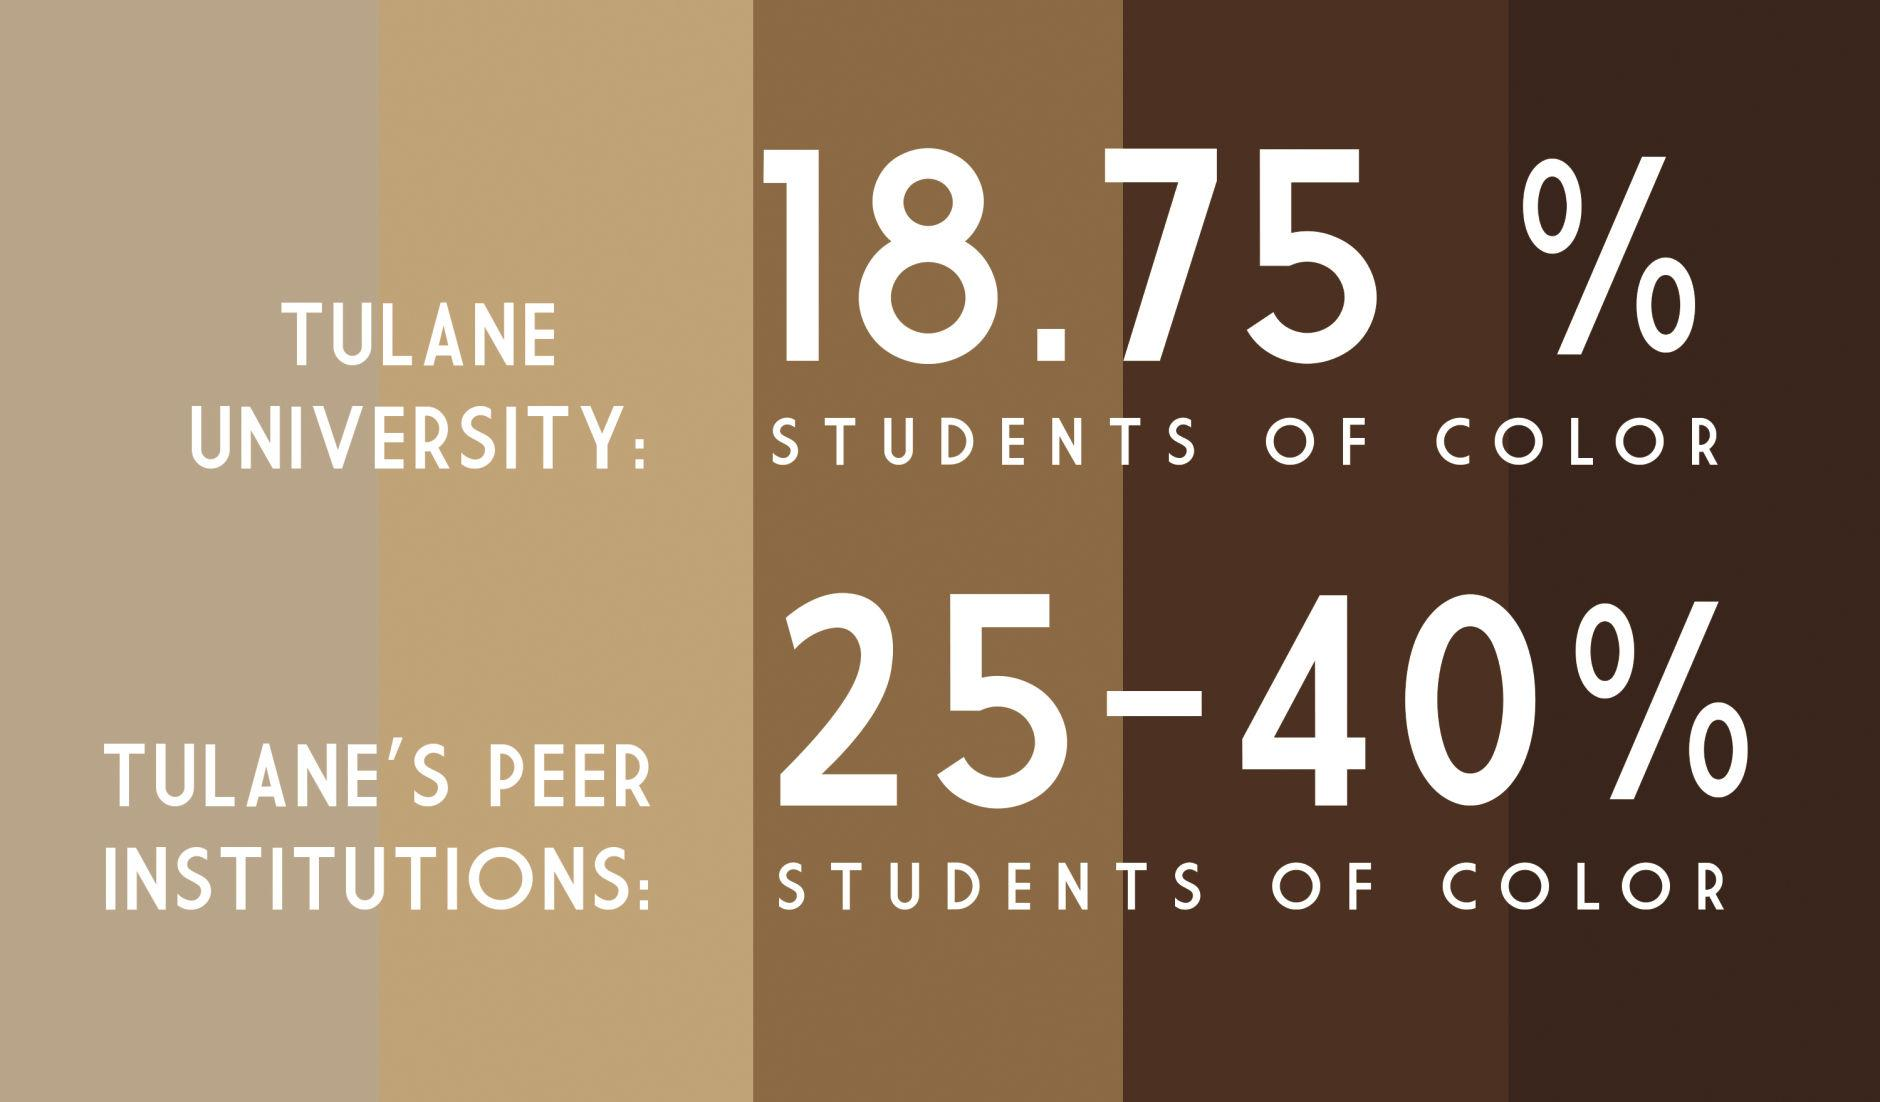 Tulane falls short of peer institutions when it comes to racial diversity.